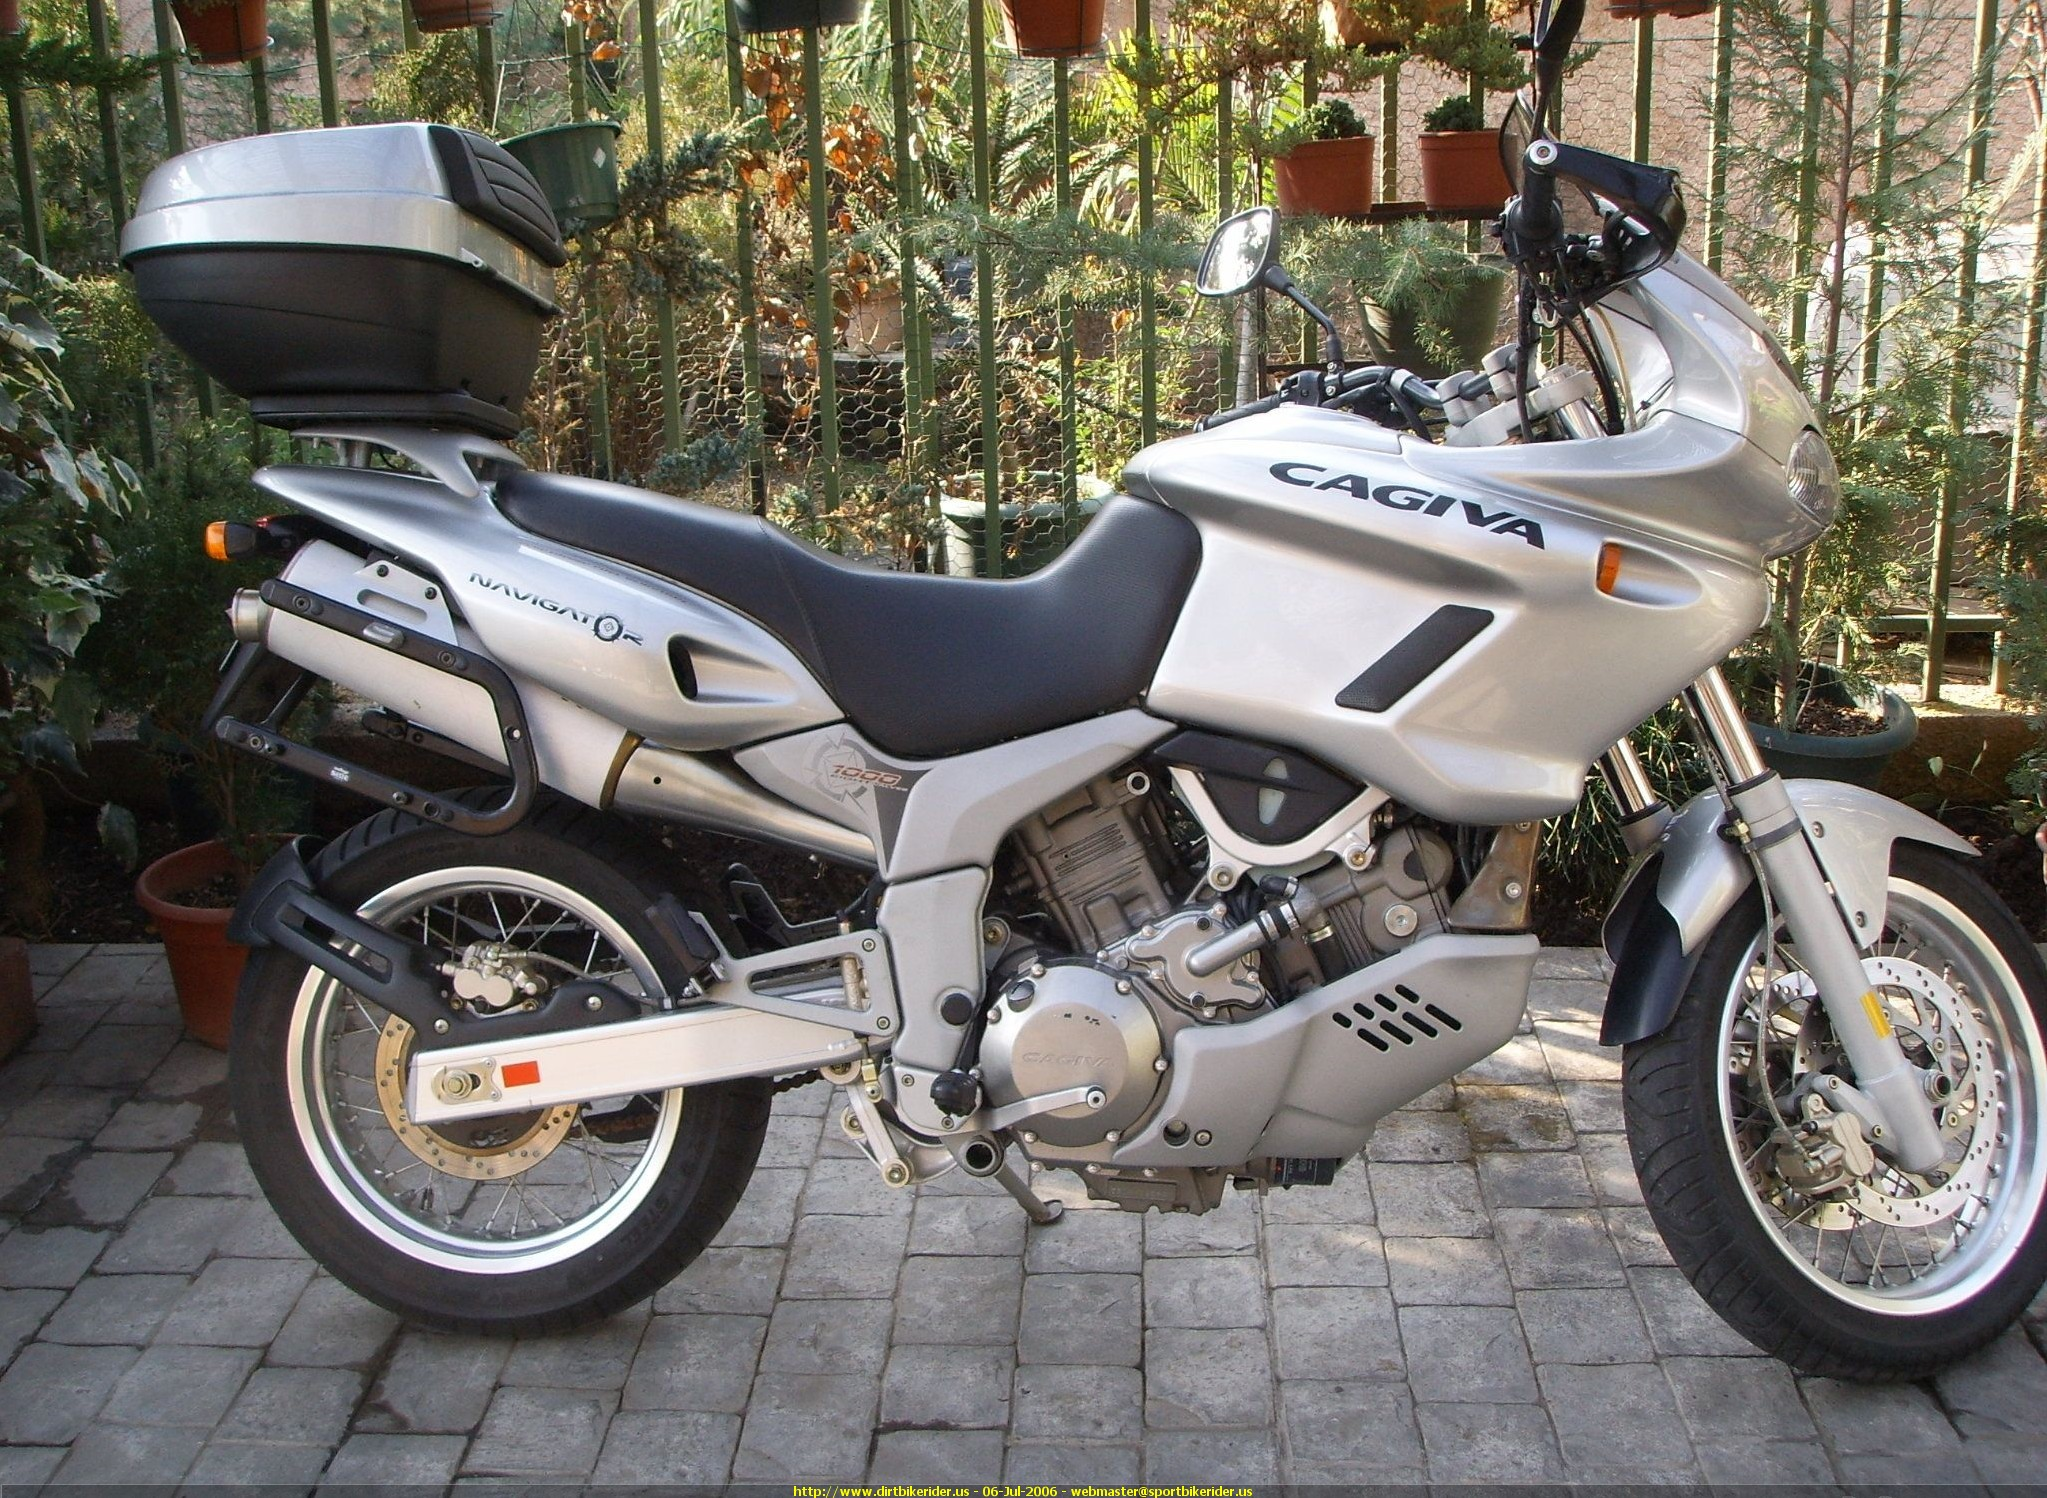 Cagiva Navigator 1000 2006 images #67712